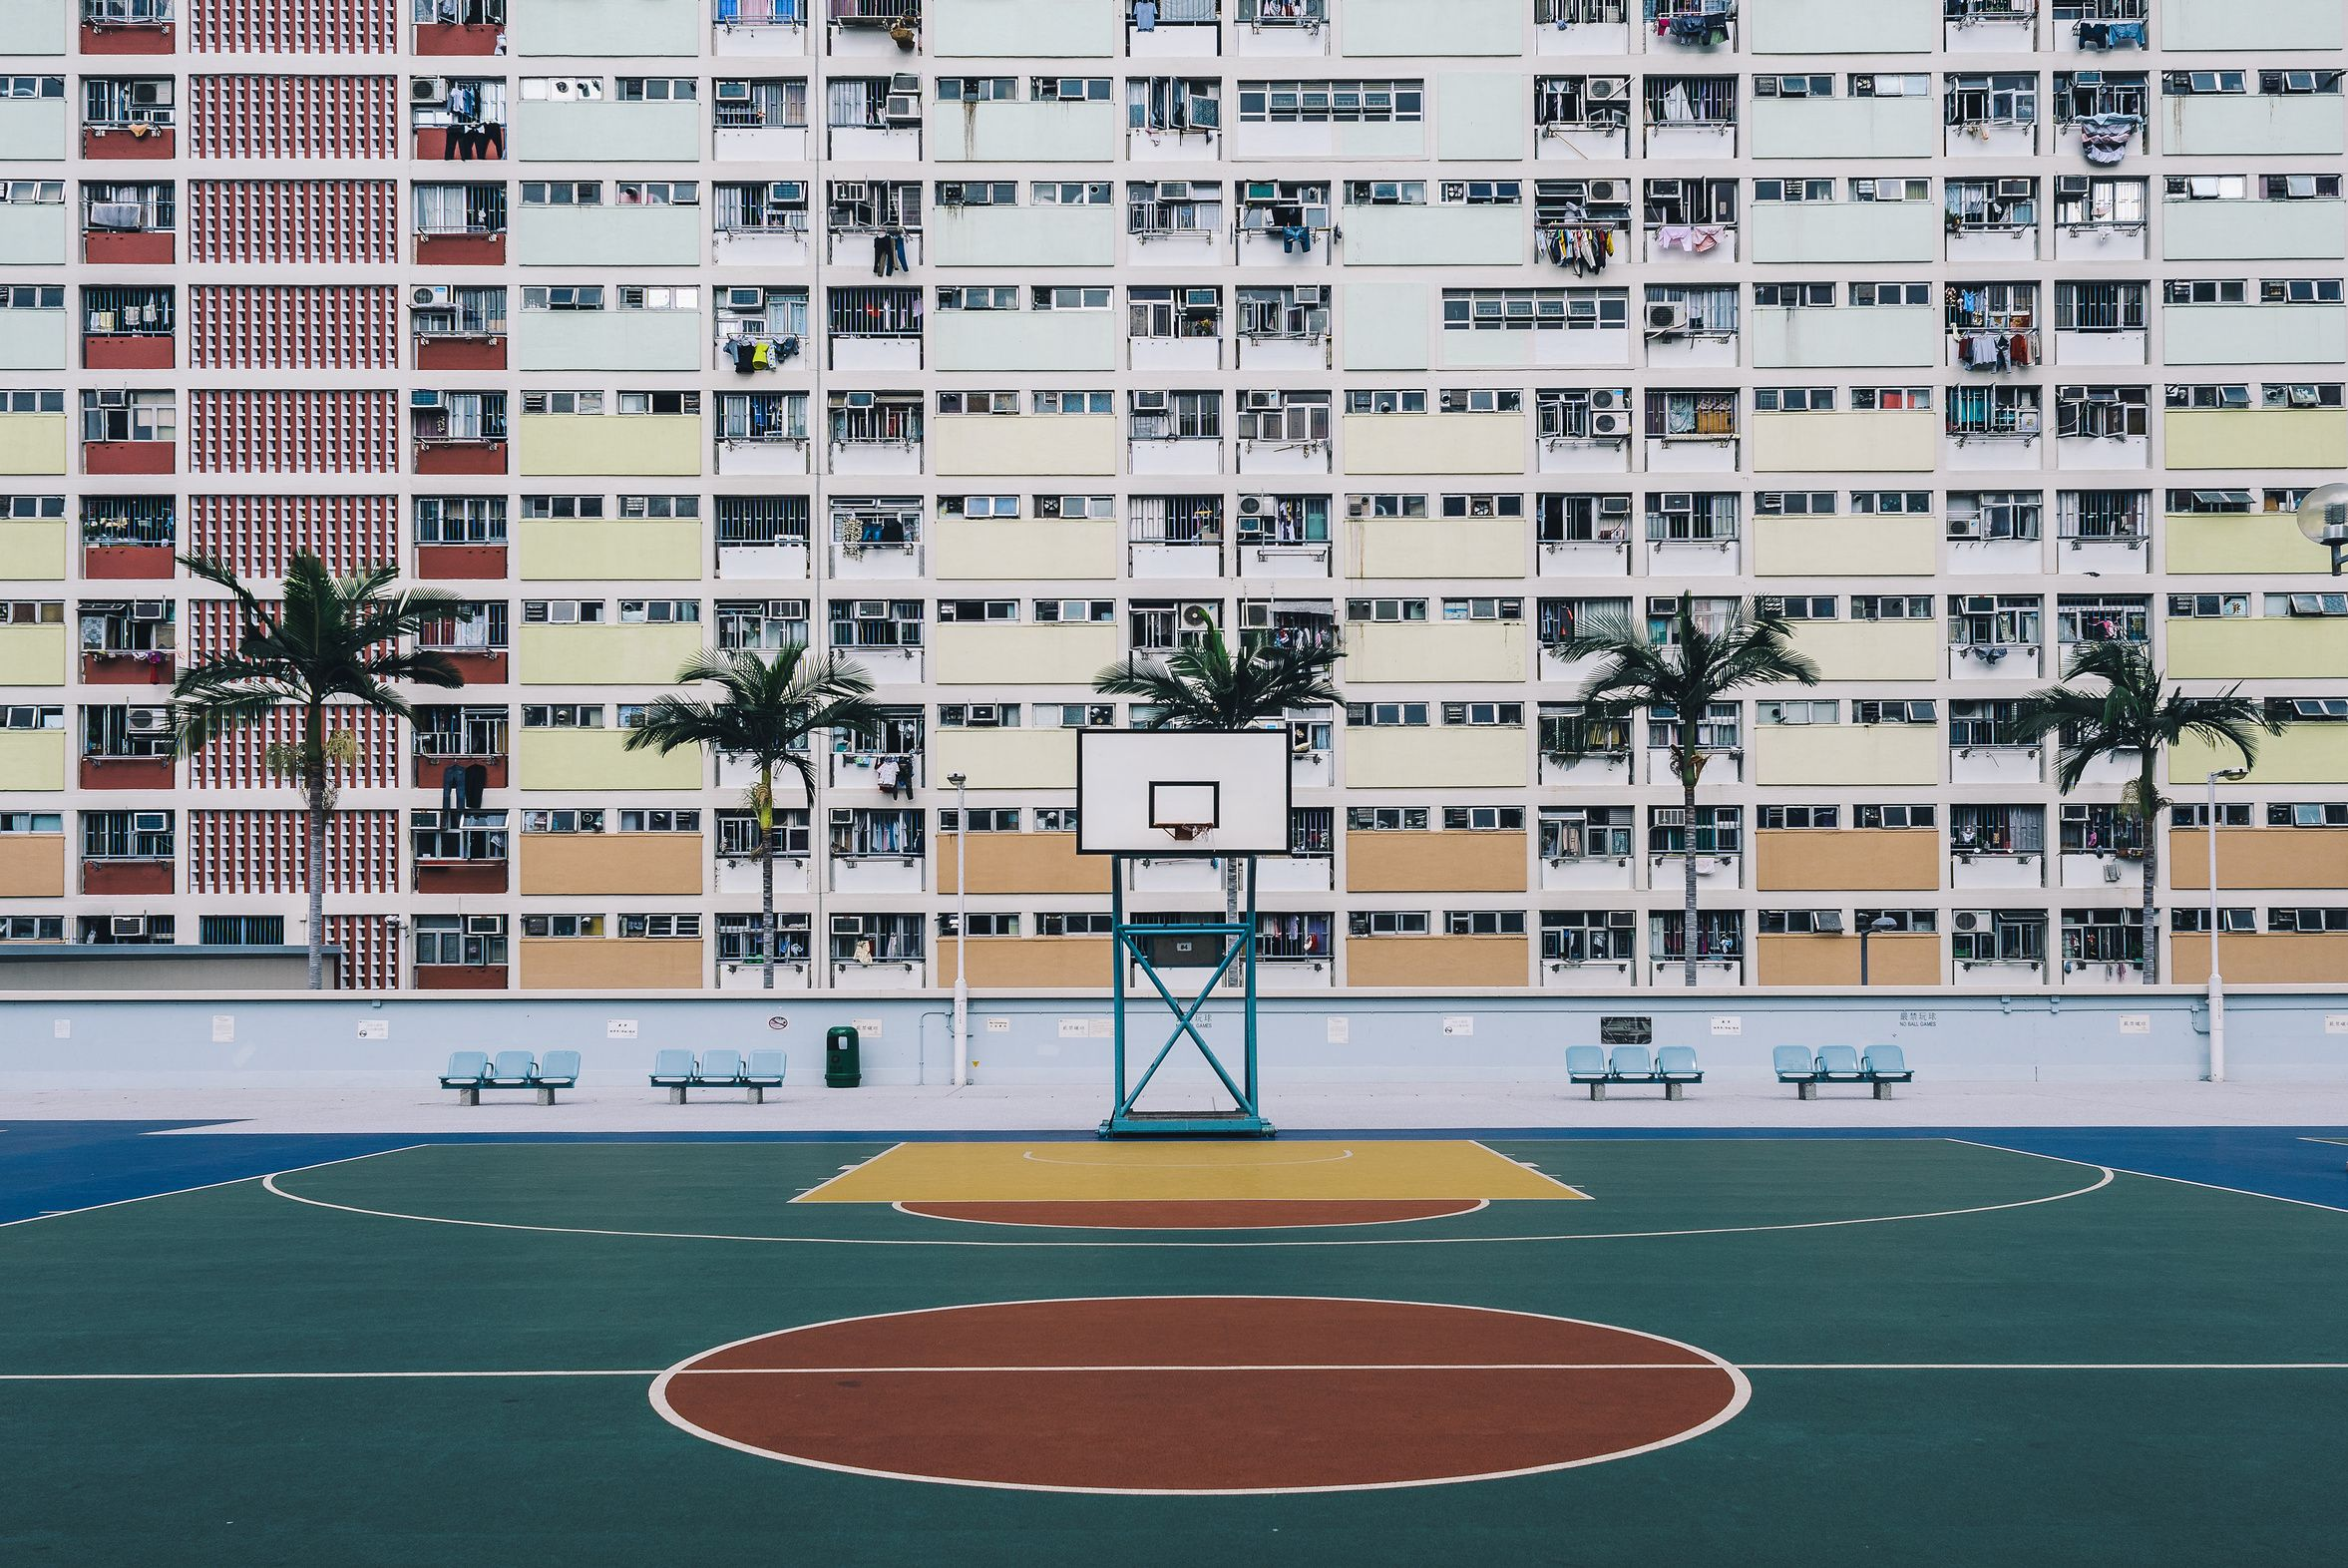 Surprising Aesthetic Sport Places Sports Basketball Basketball Court